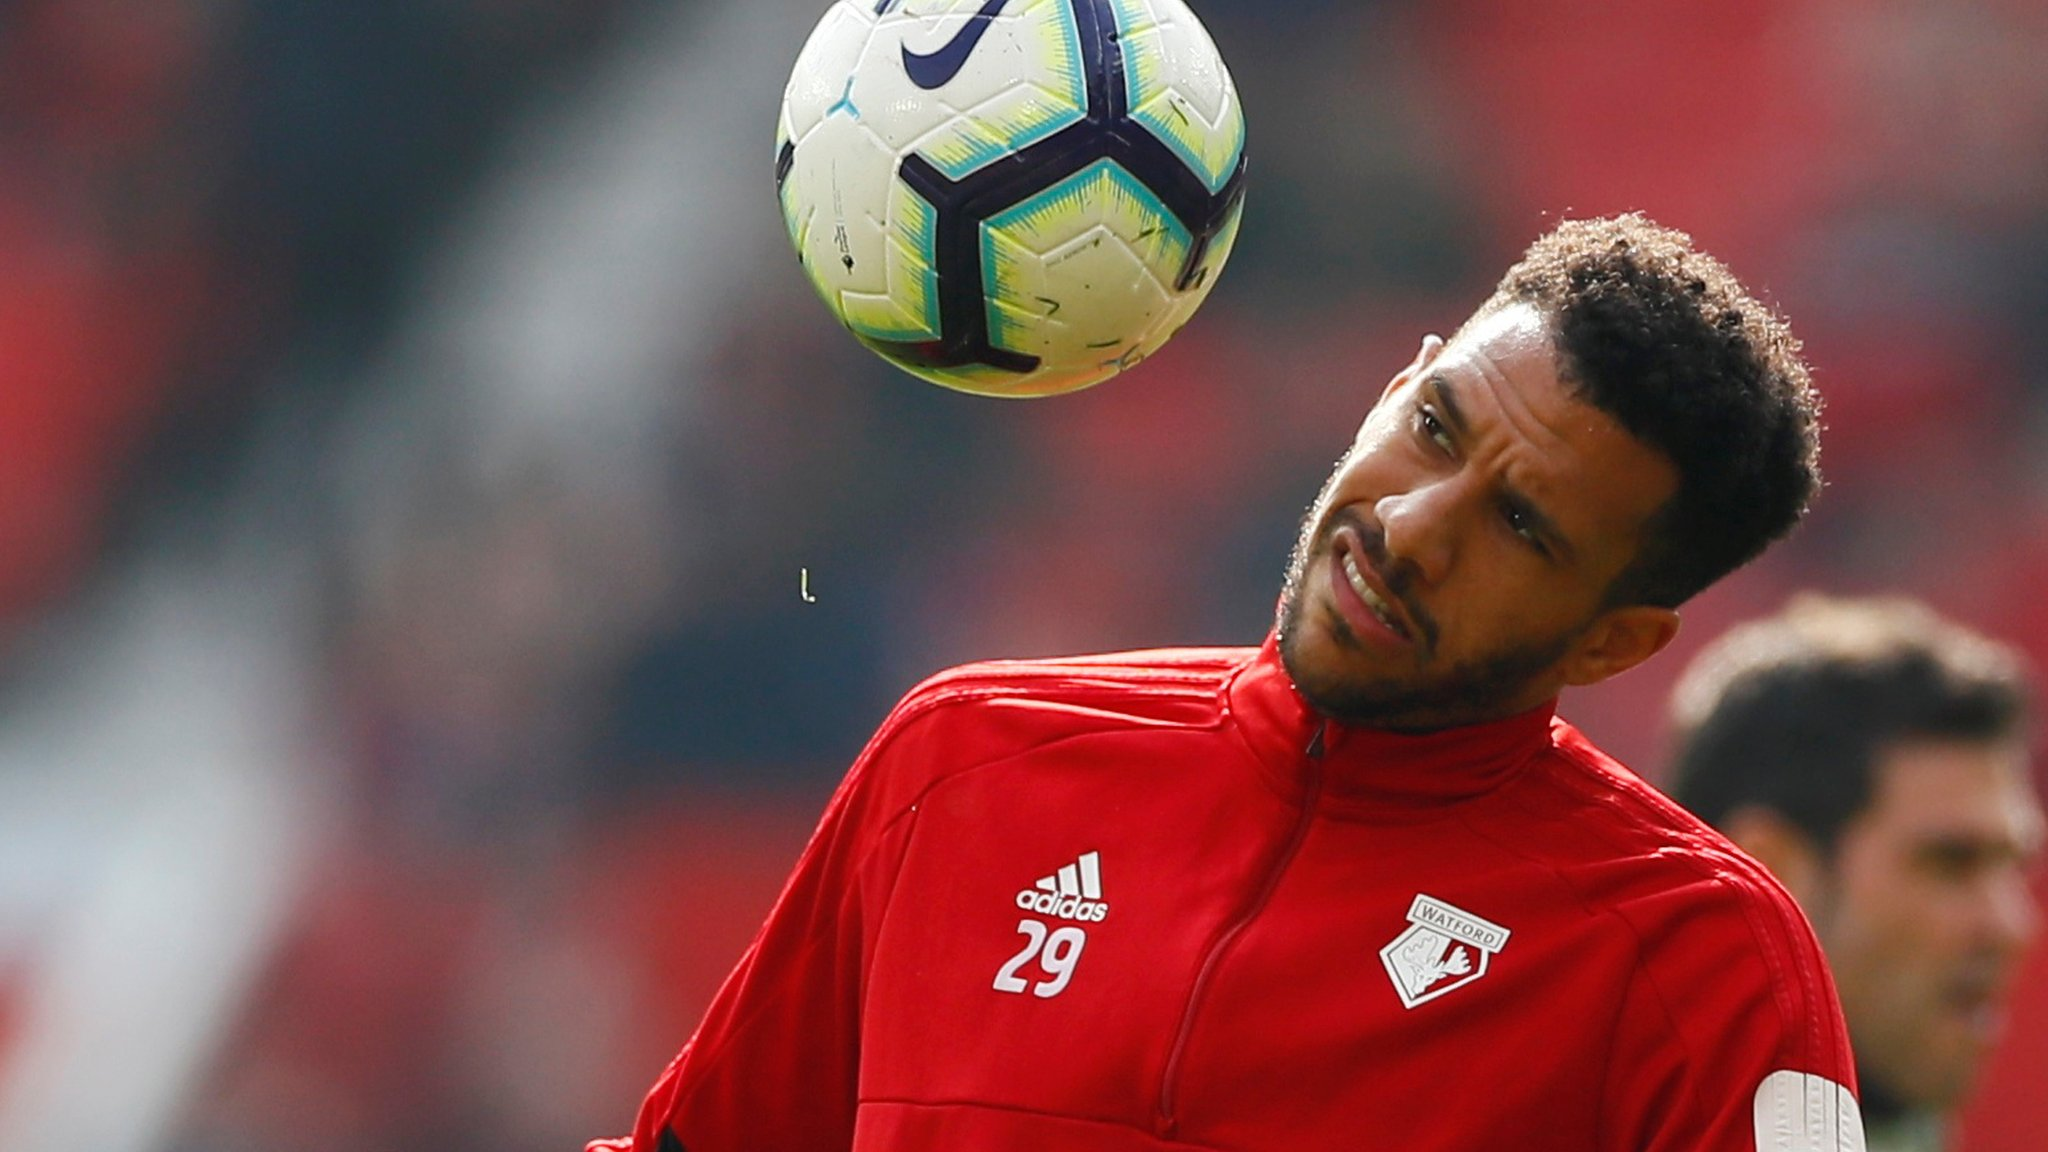 FA Cup: Watford's Capoue on family, football, Baby Shark & Manchester City